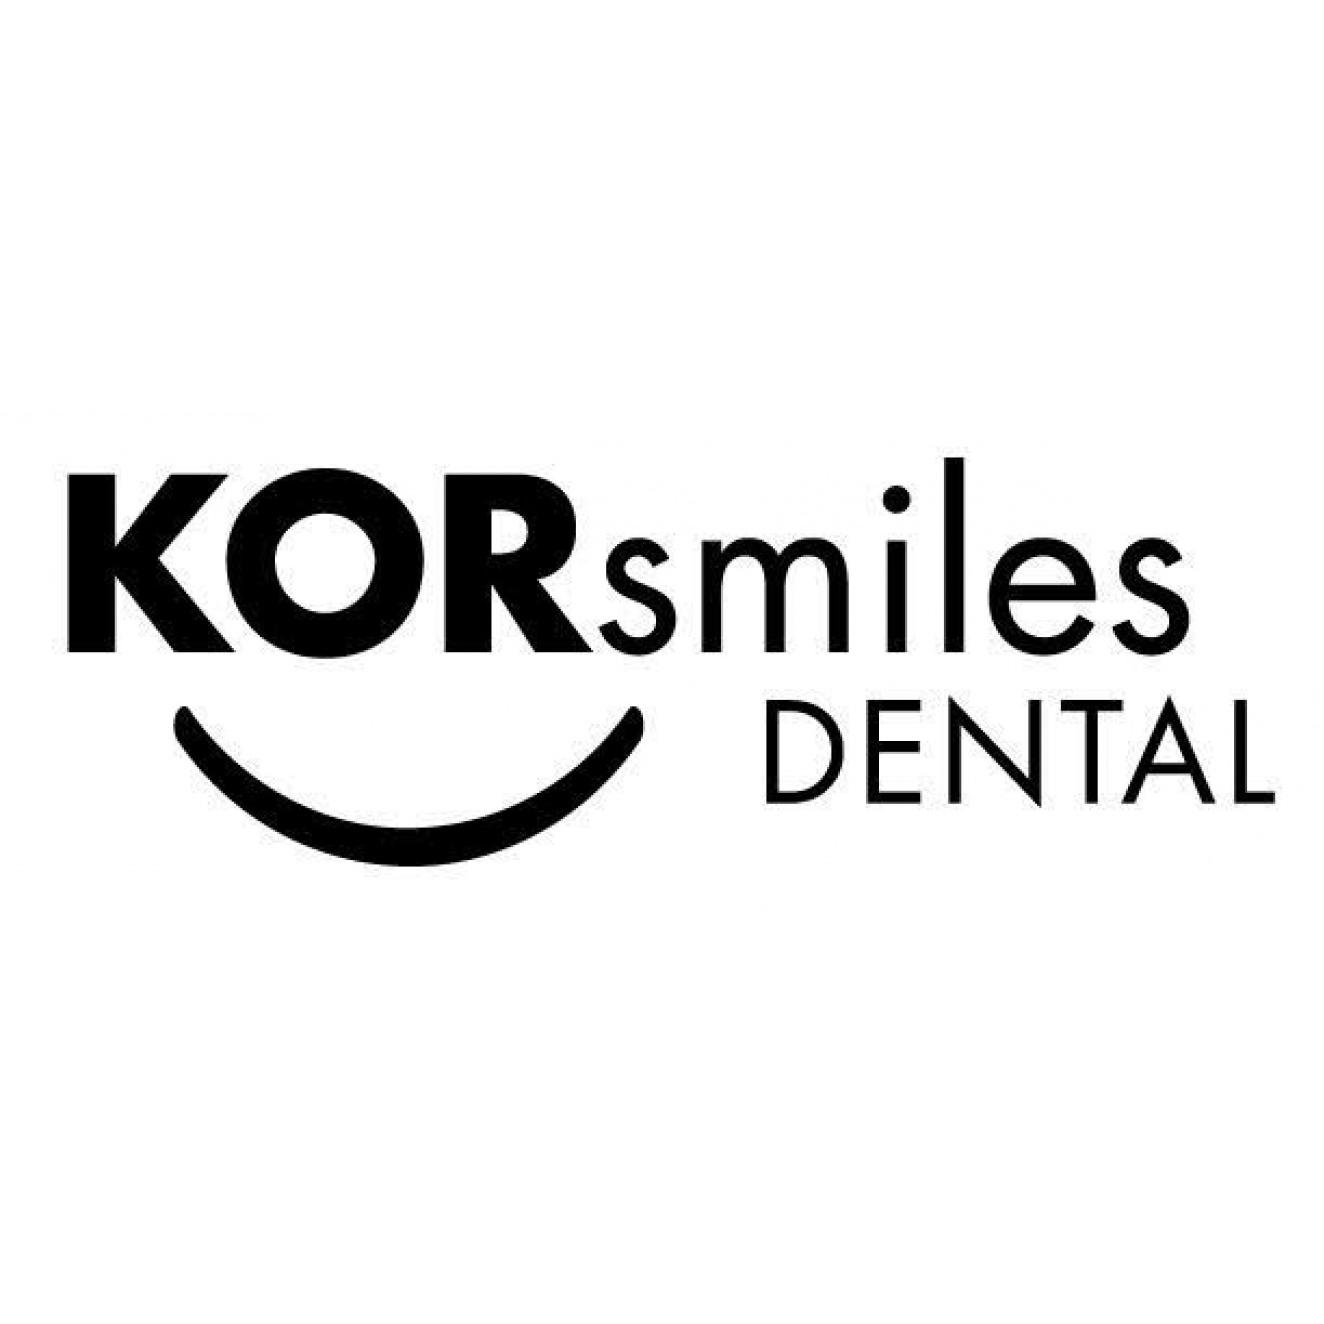 KorSmiles Dental